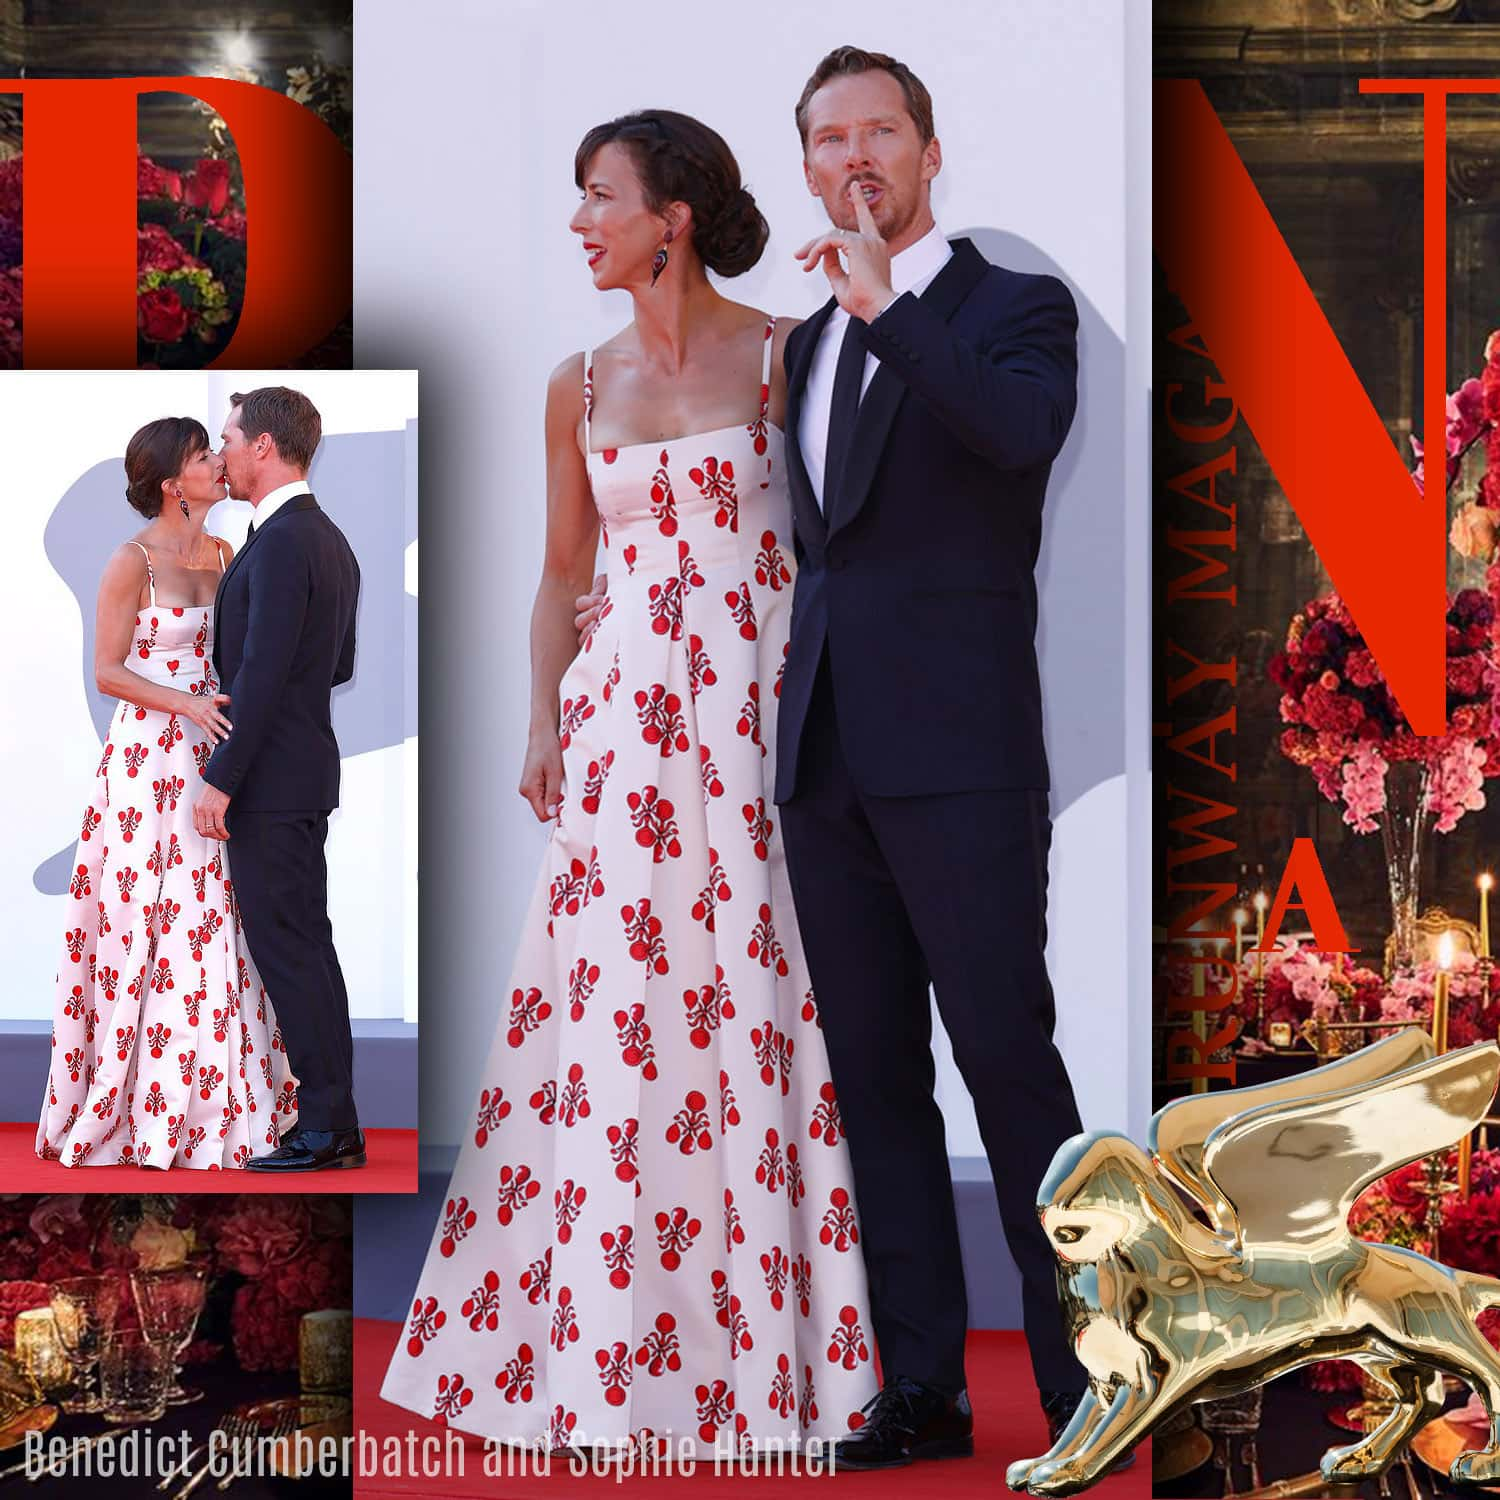 Benedict Cumberbatch and Sophie Hunter at 78th Venice International Film Festival by RUNWAY MAGAZINE